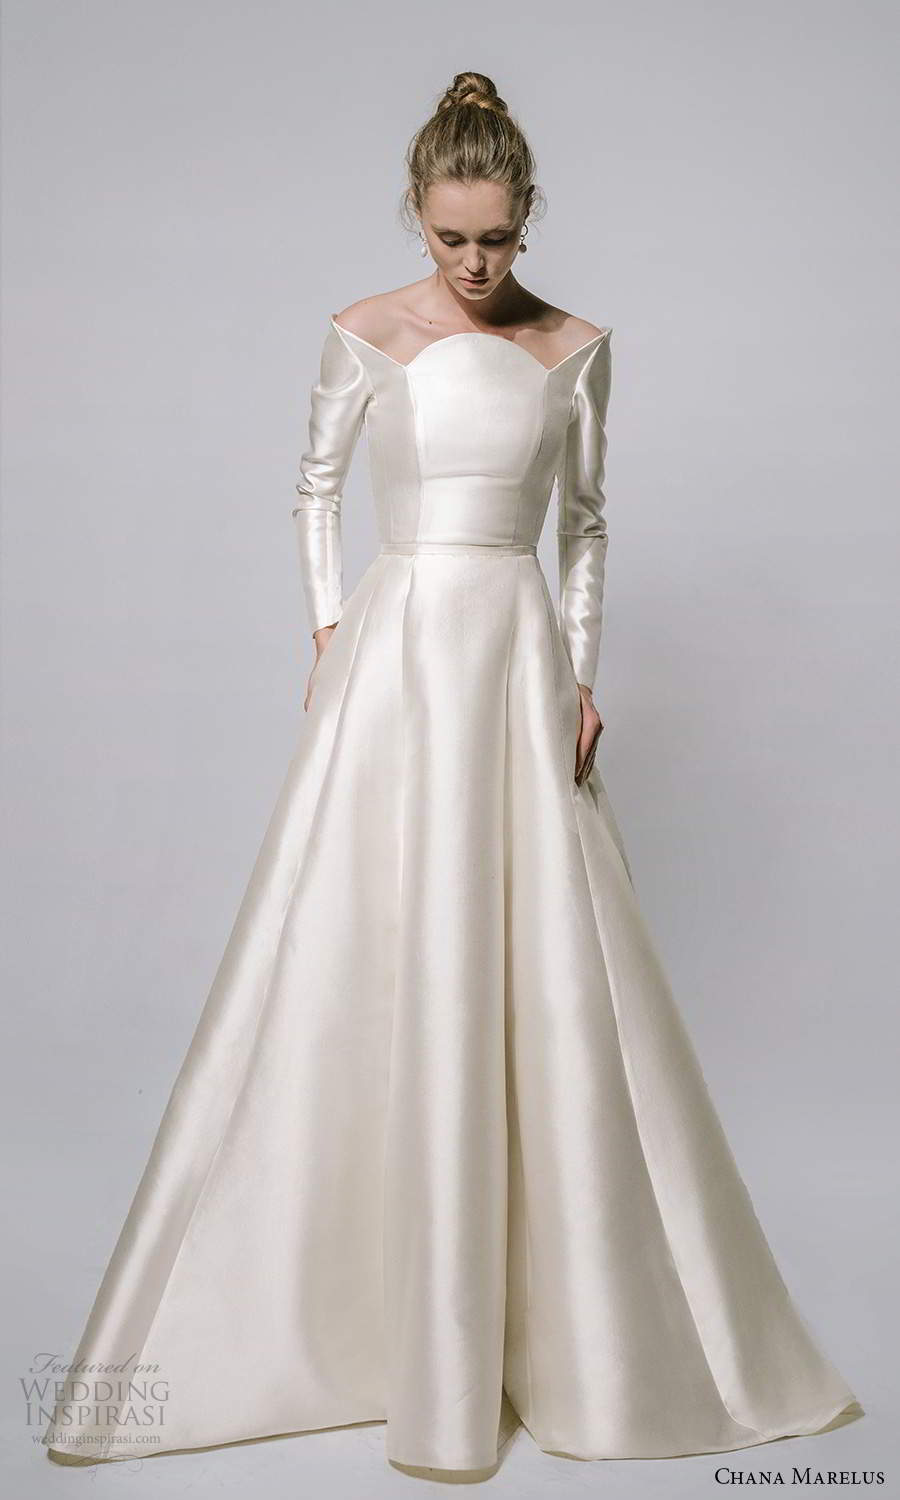 chana marelus 2021 bridal long sleeves scalloped neckline clean minimalist a line ball gown wedding dress pockets (2) mv